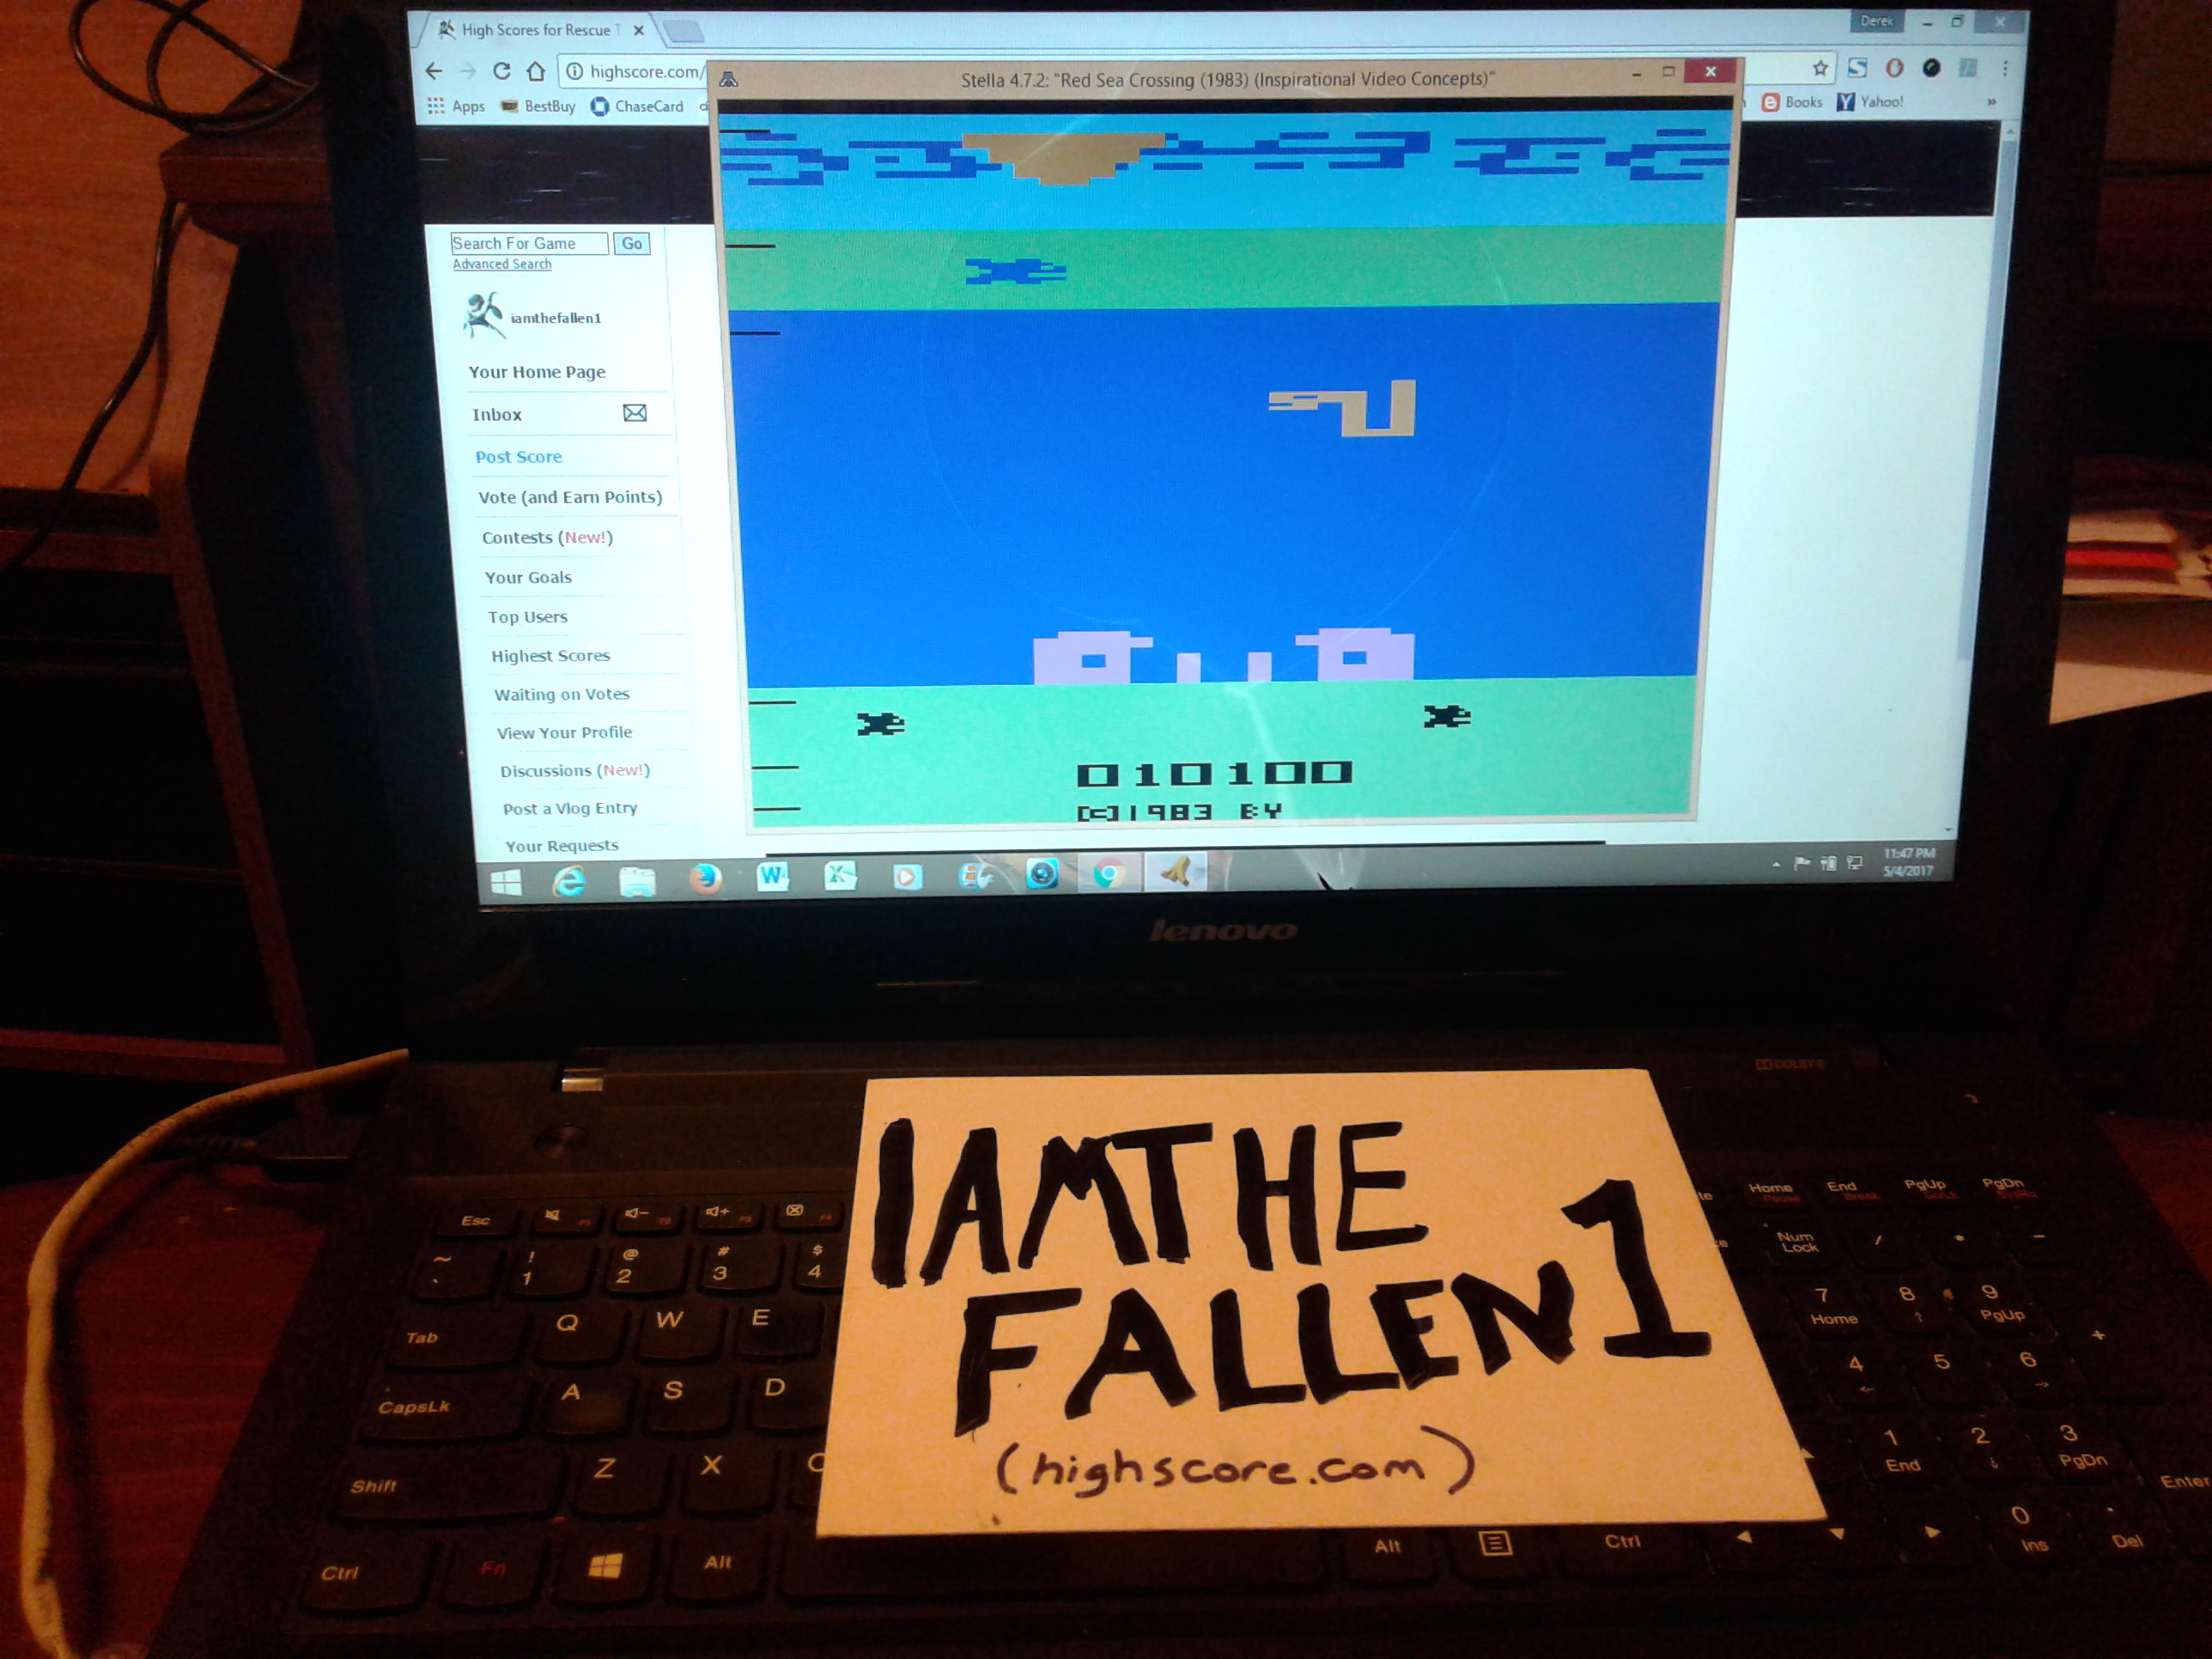 iamthefallen1: Red Sea Crossing (Atari 2600 Emulated Novice/B Mode) 10,100 points on 2017-06-06 23:32:37